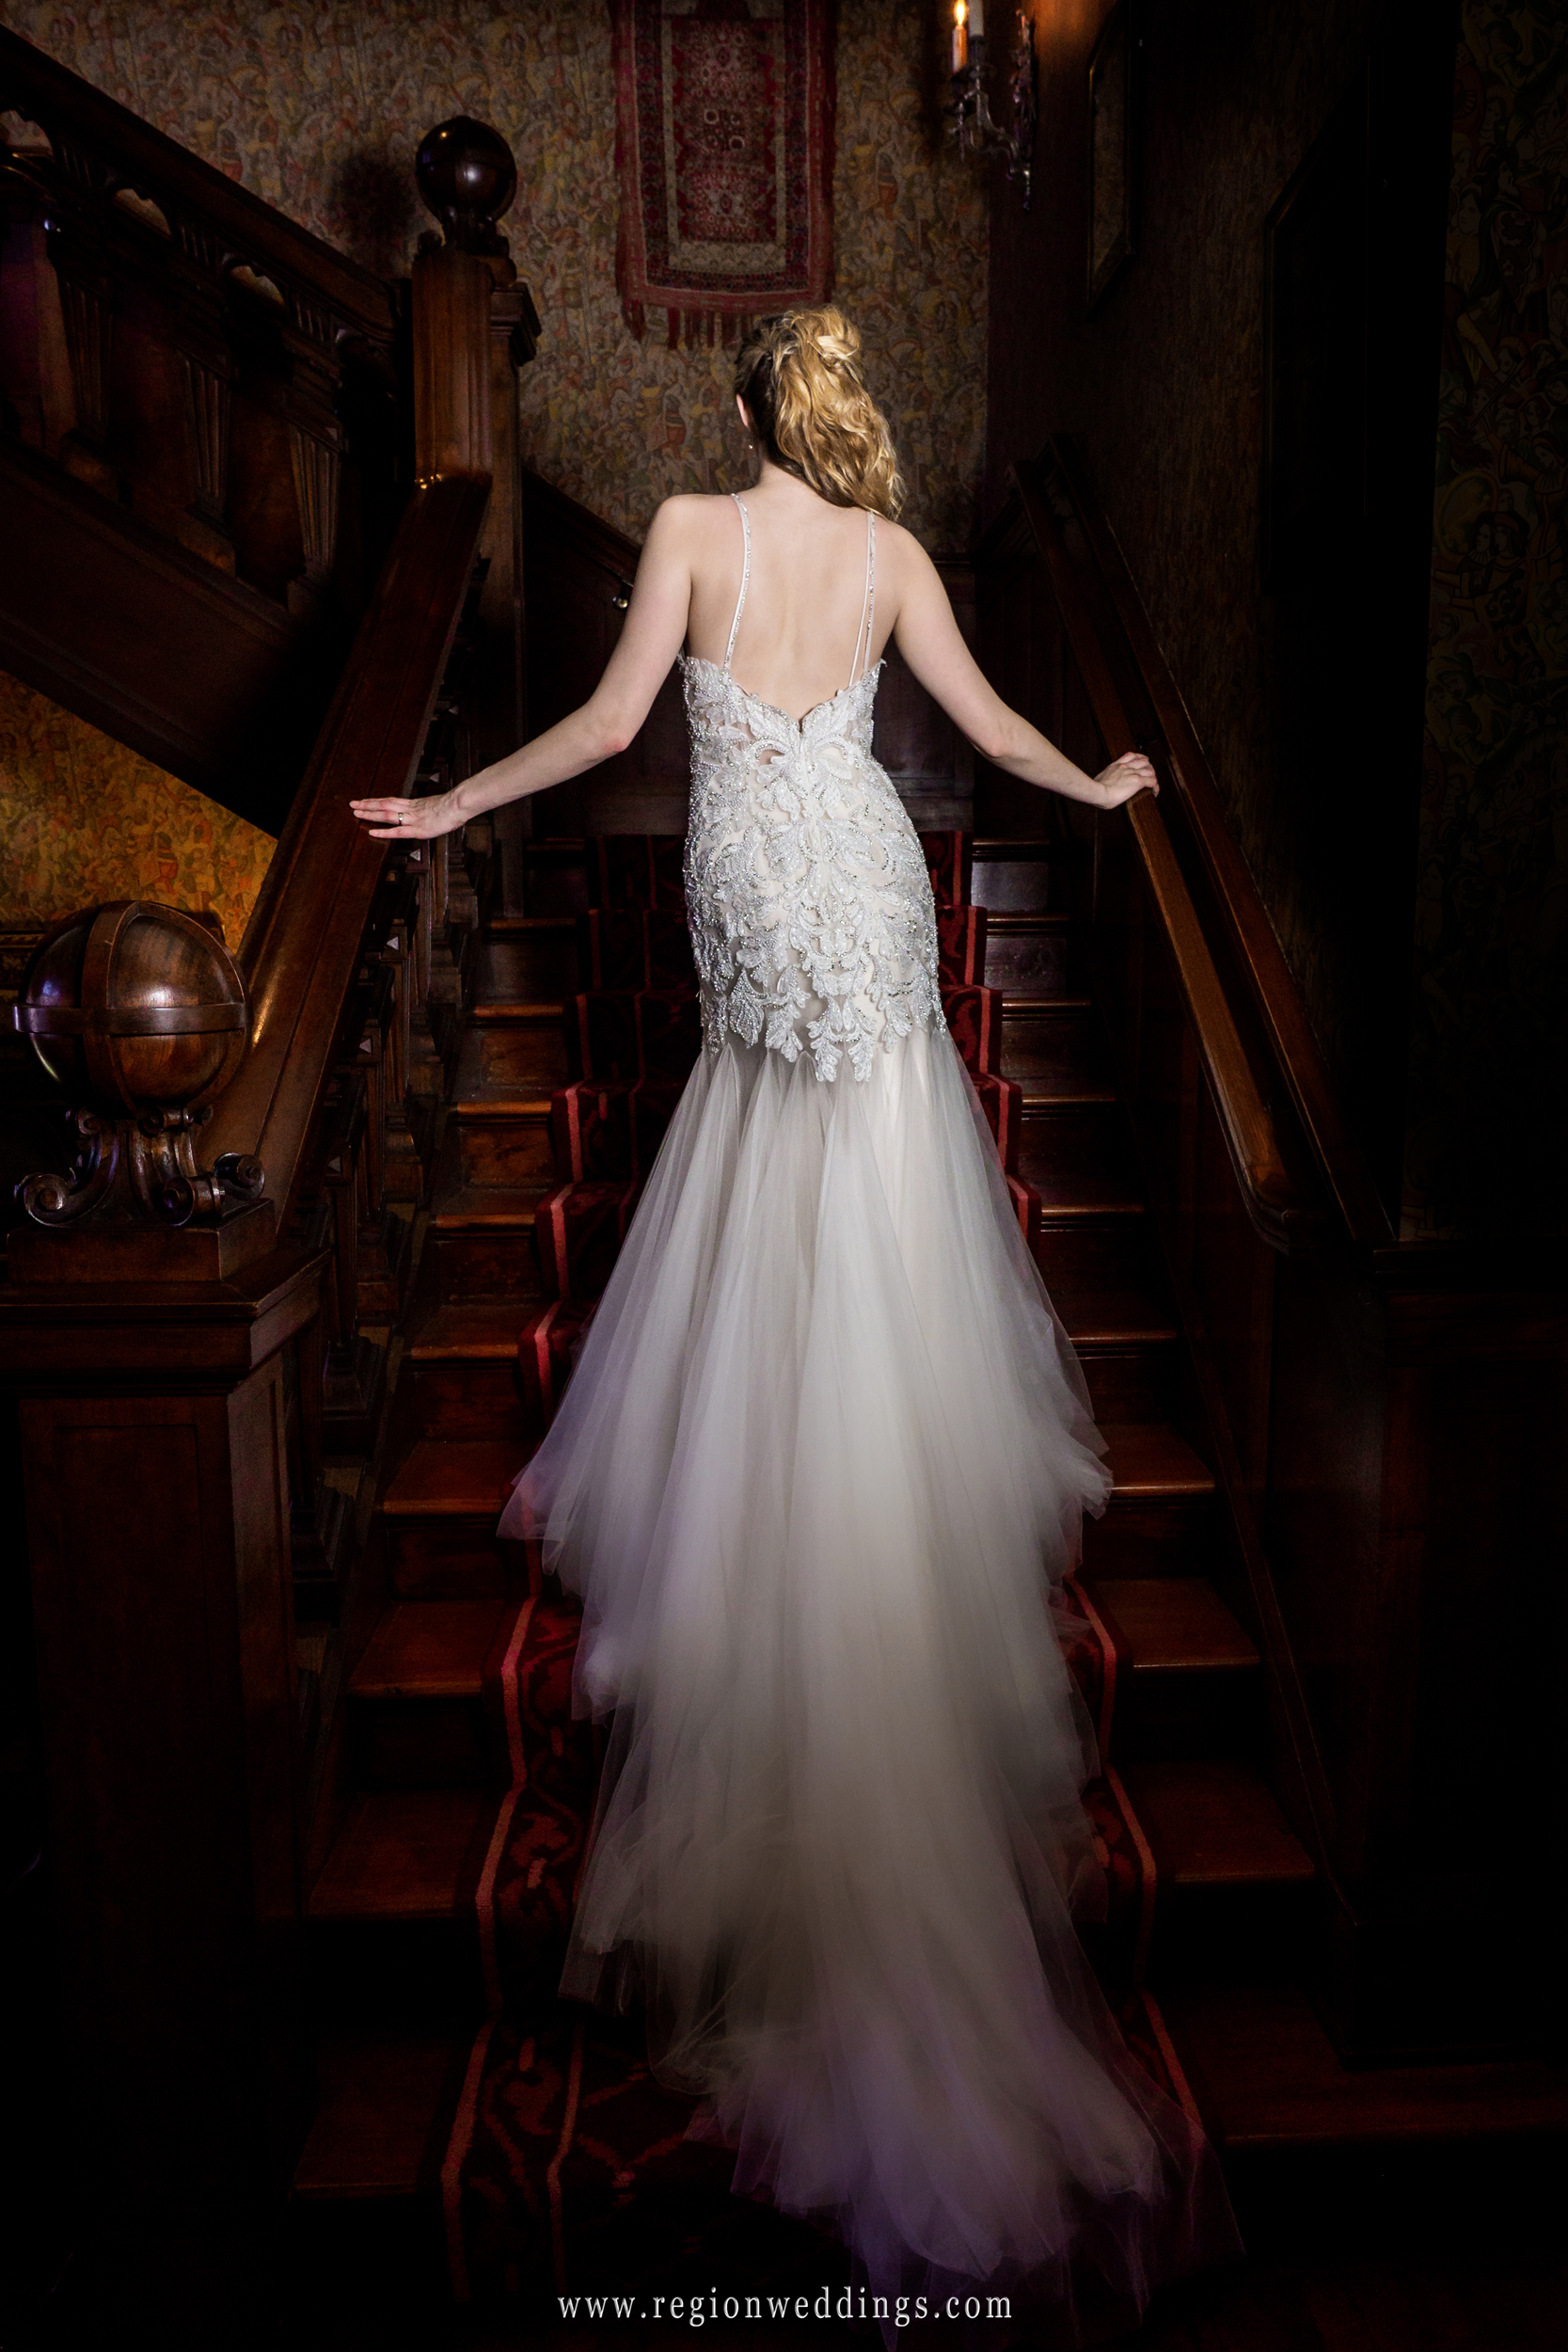 Showing off the dress on the red carpeted staircase.